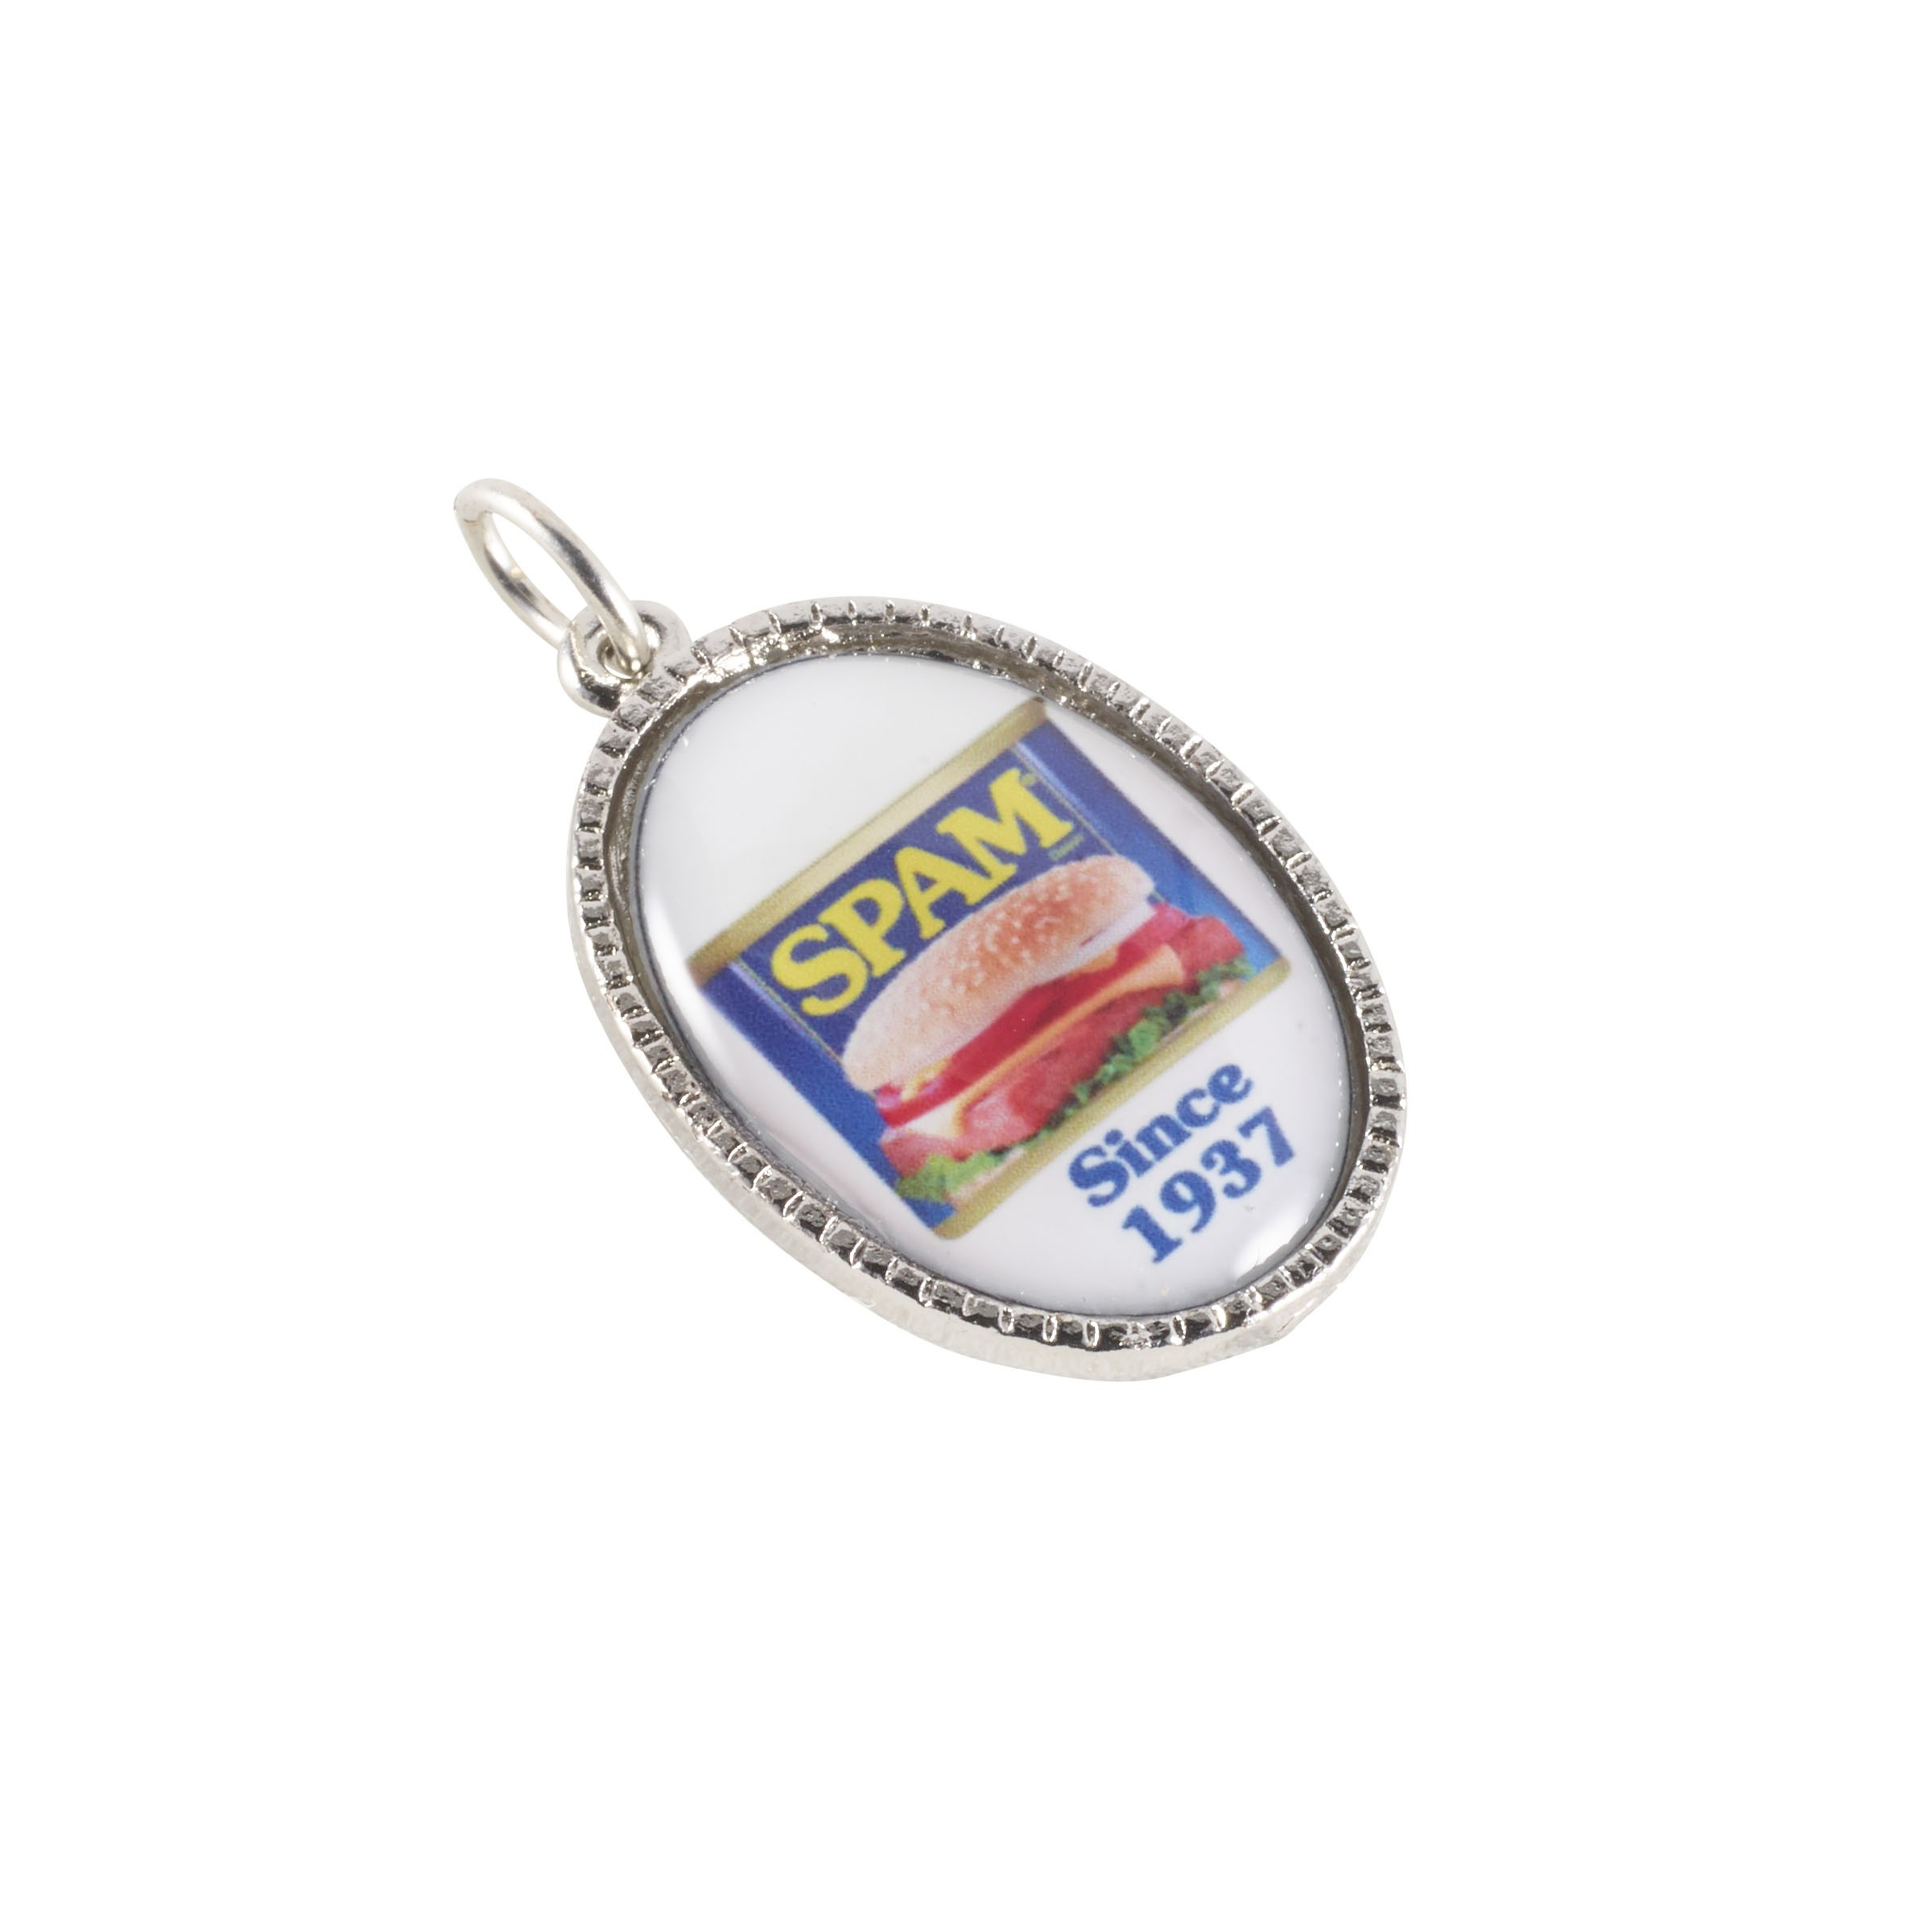 Oval Charm with SPAM® Brand logo